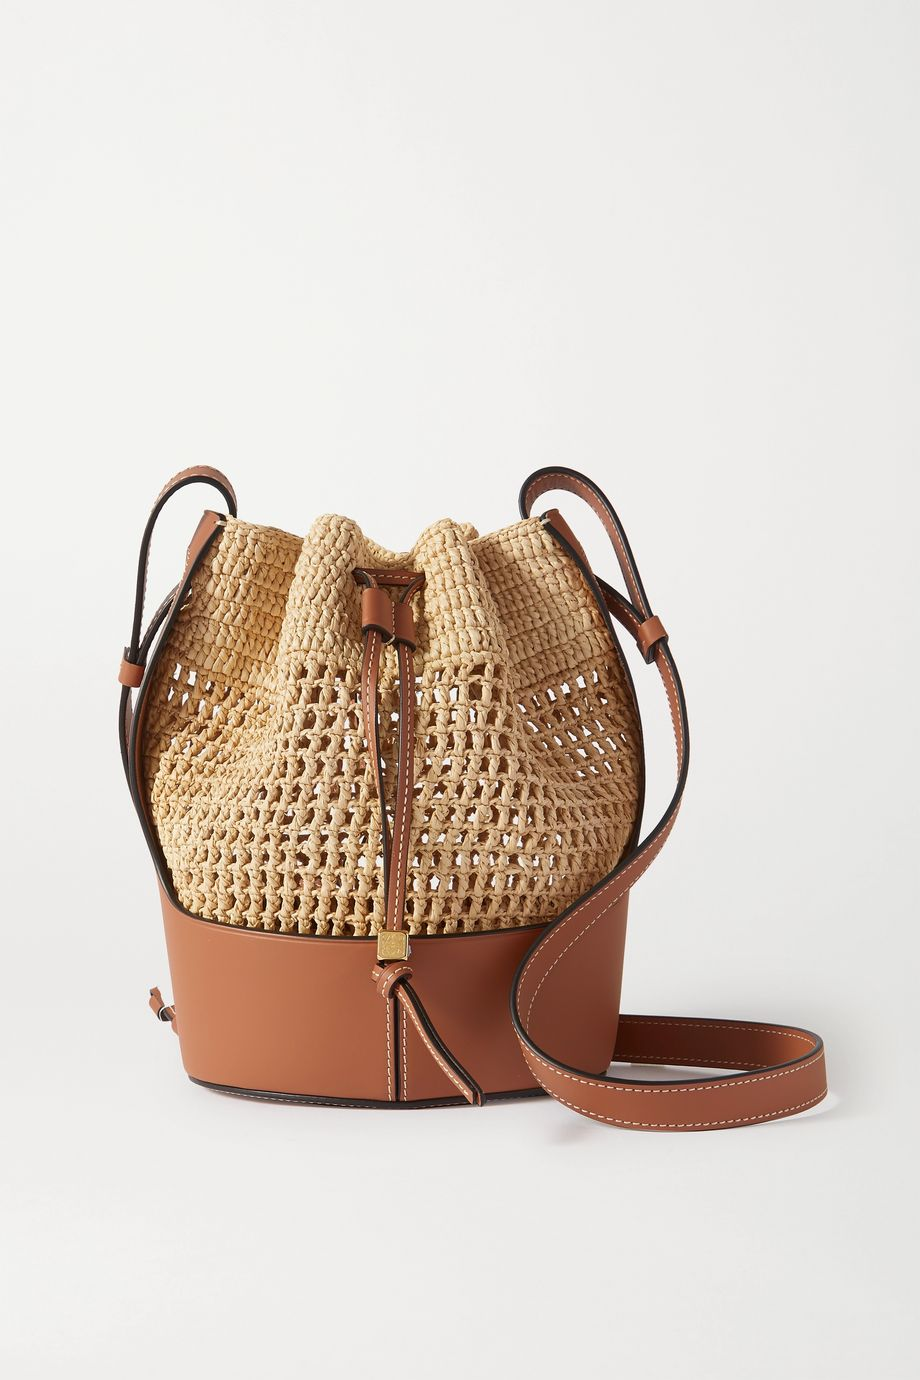 LOEWE Balloon small leather and raffia bucket bag